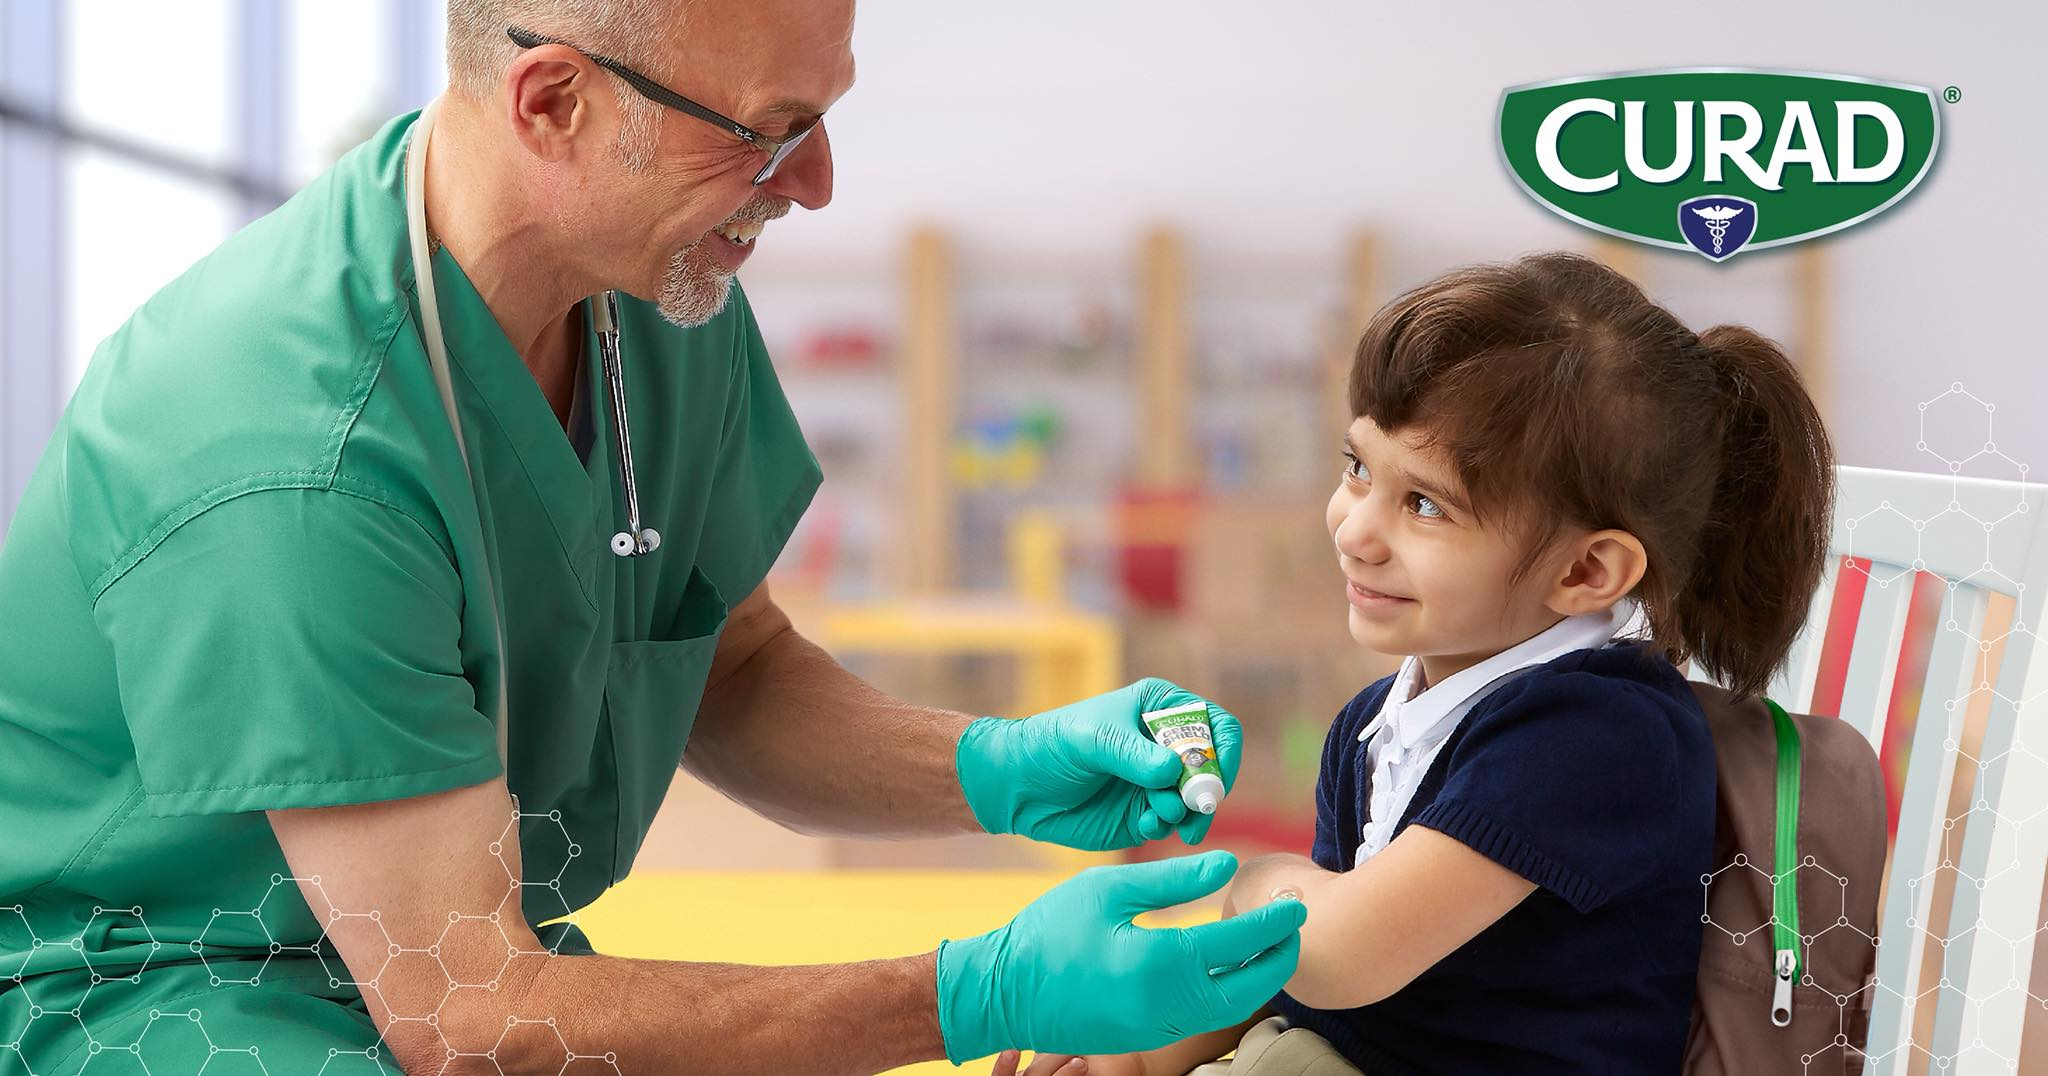 OK so Jerry is not really a doctor, and my daughter was not hurt! this is my most memorable photoshoot. We faked the background too. I propped the shoot as well.